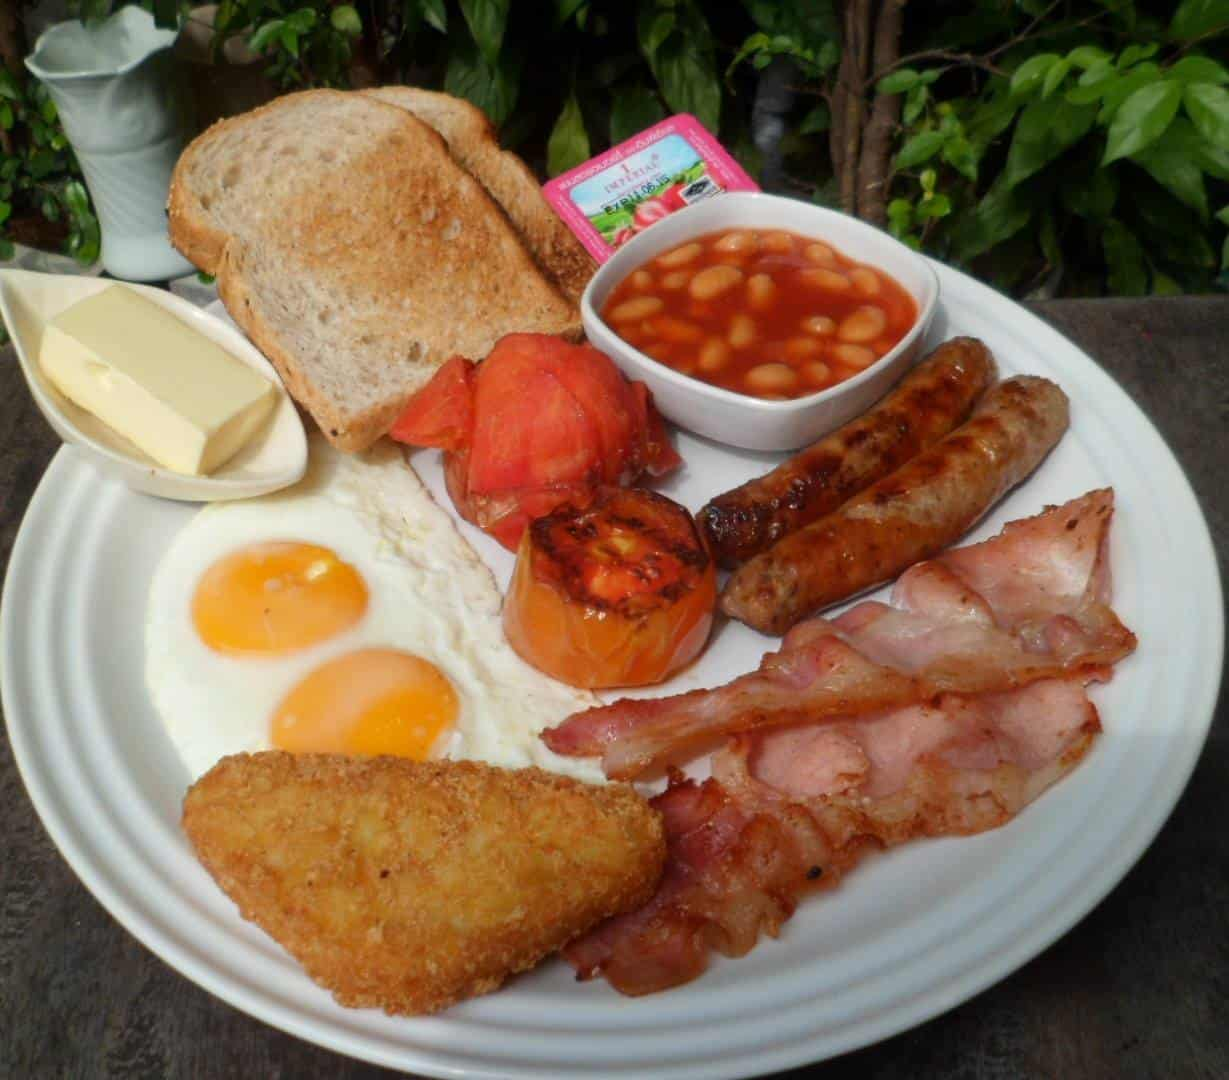 Traditional Full English Breakfast: 6 Of The Best Full English Breakfasts In Chiang Mai